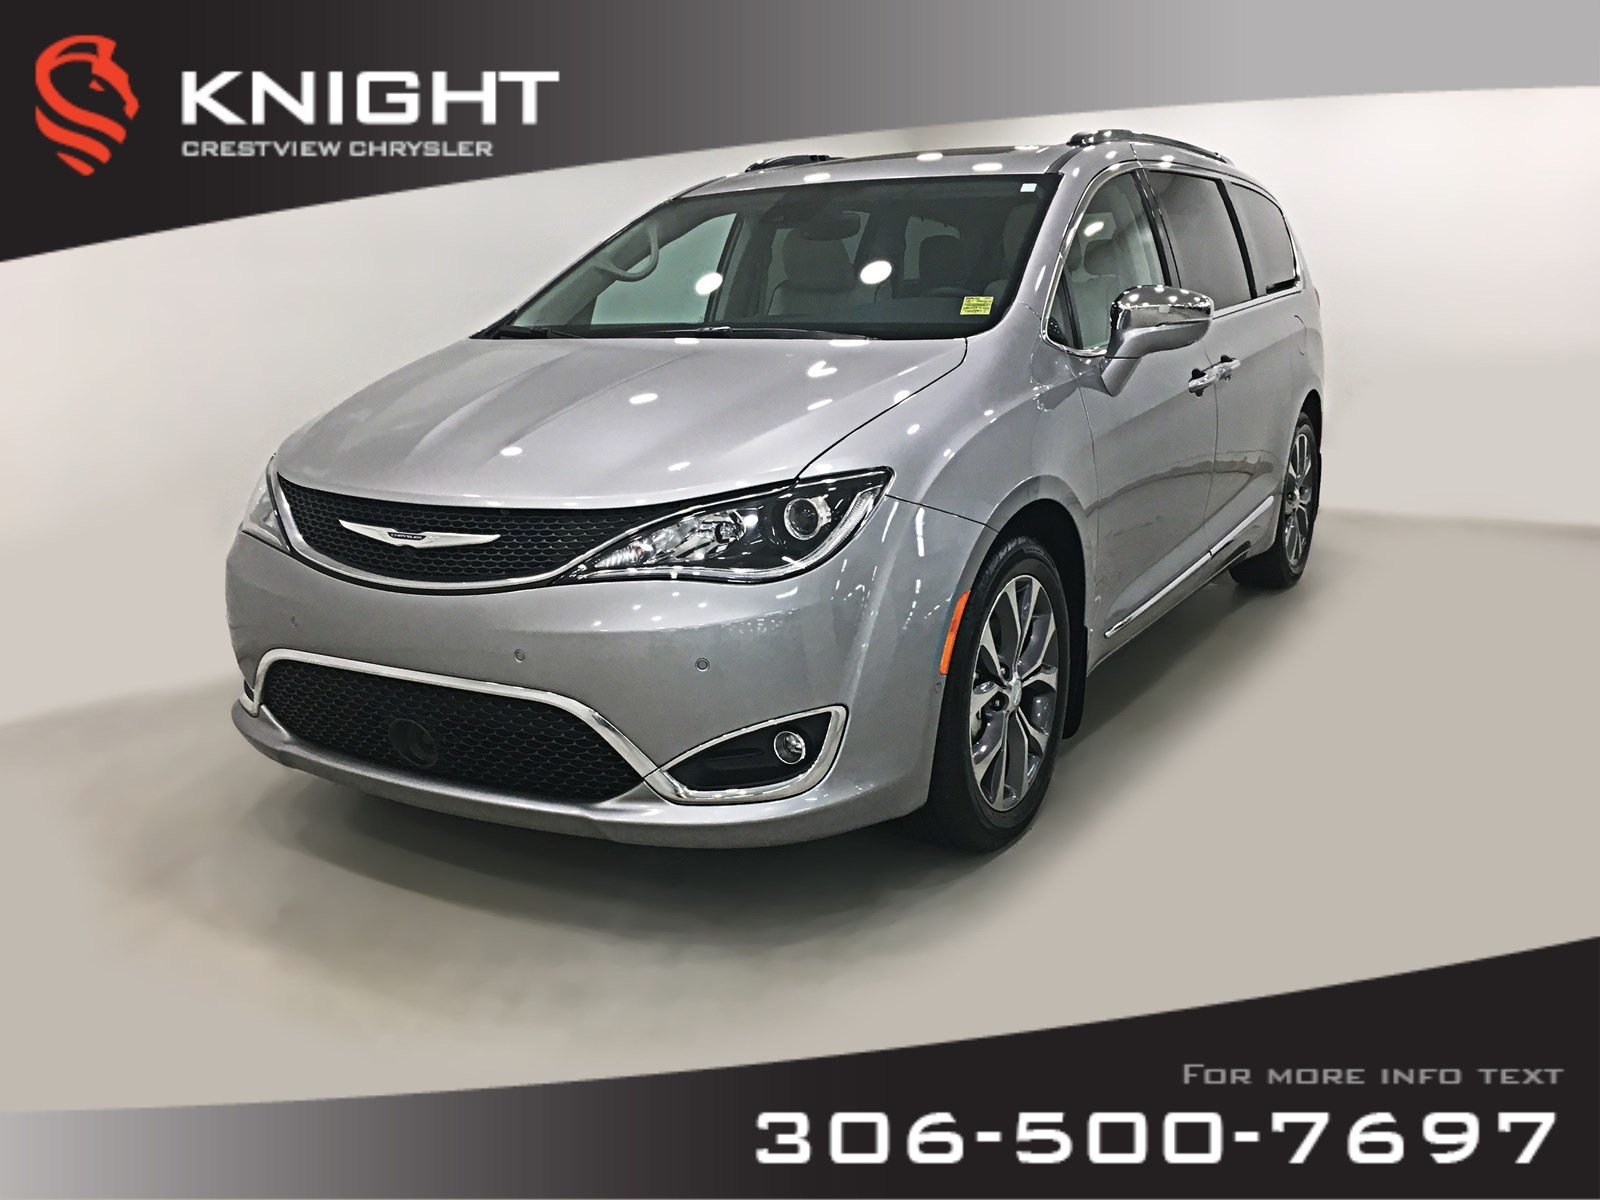 Certified Pre-Owned 2017 Chrysler Pacifica Limited | Sunroof | Navigation | DVD